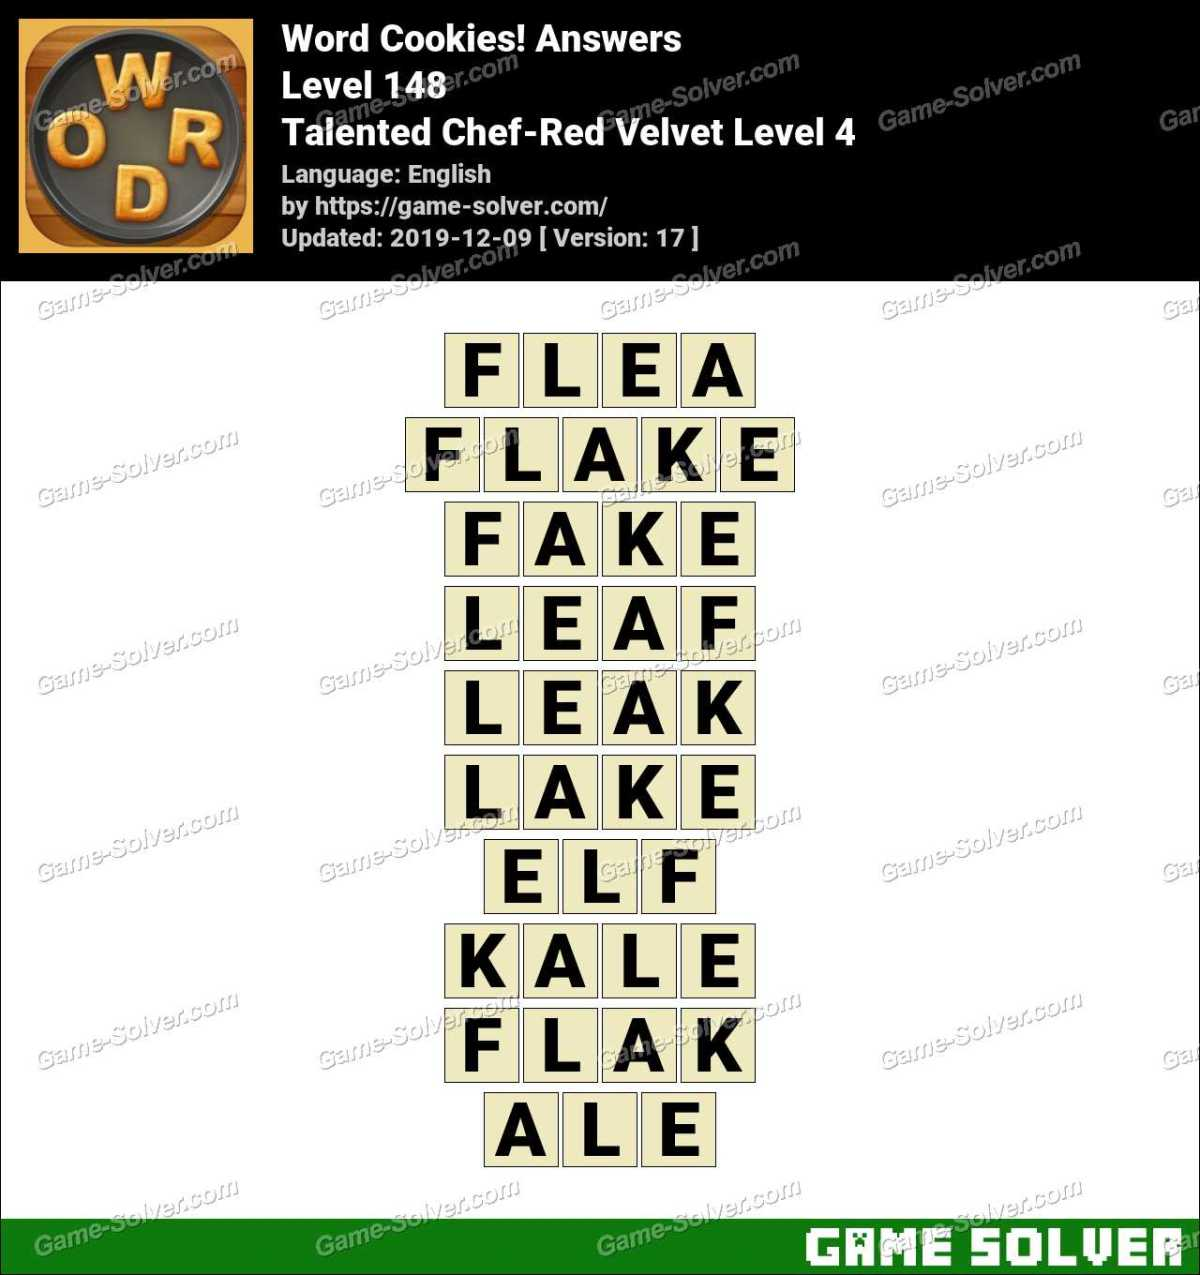 Word Cookies Talented Chef-Red Velvet Level 4 Answers